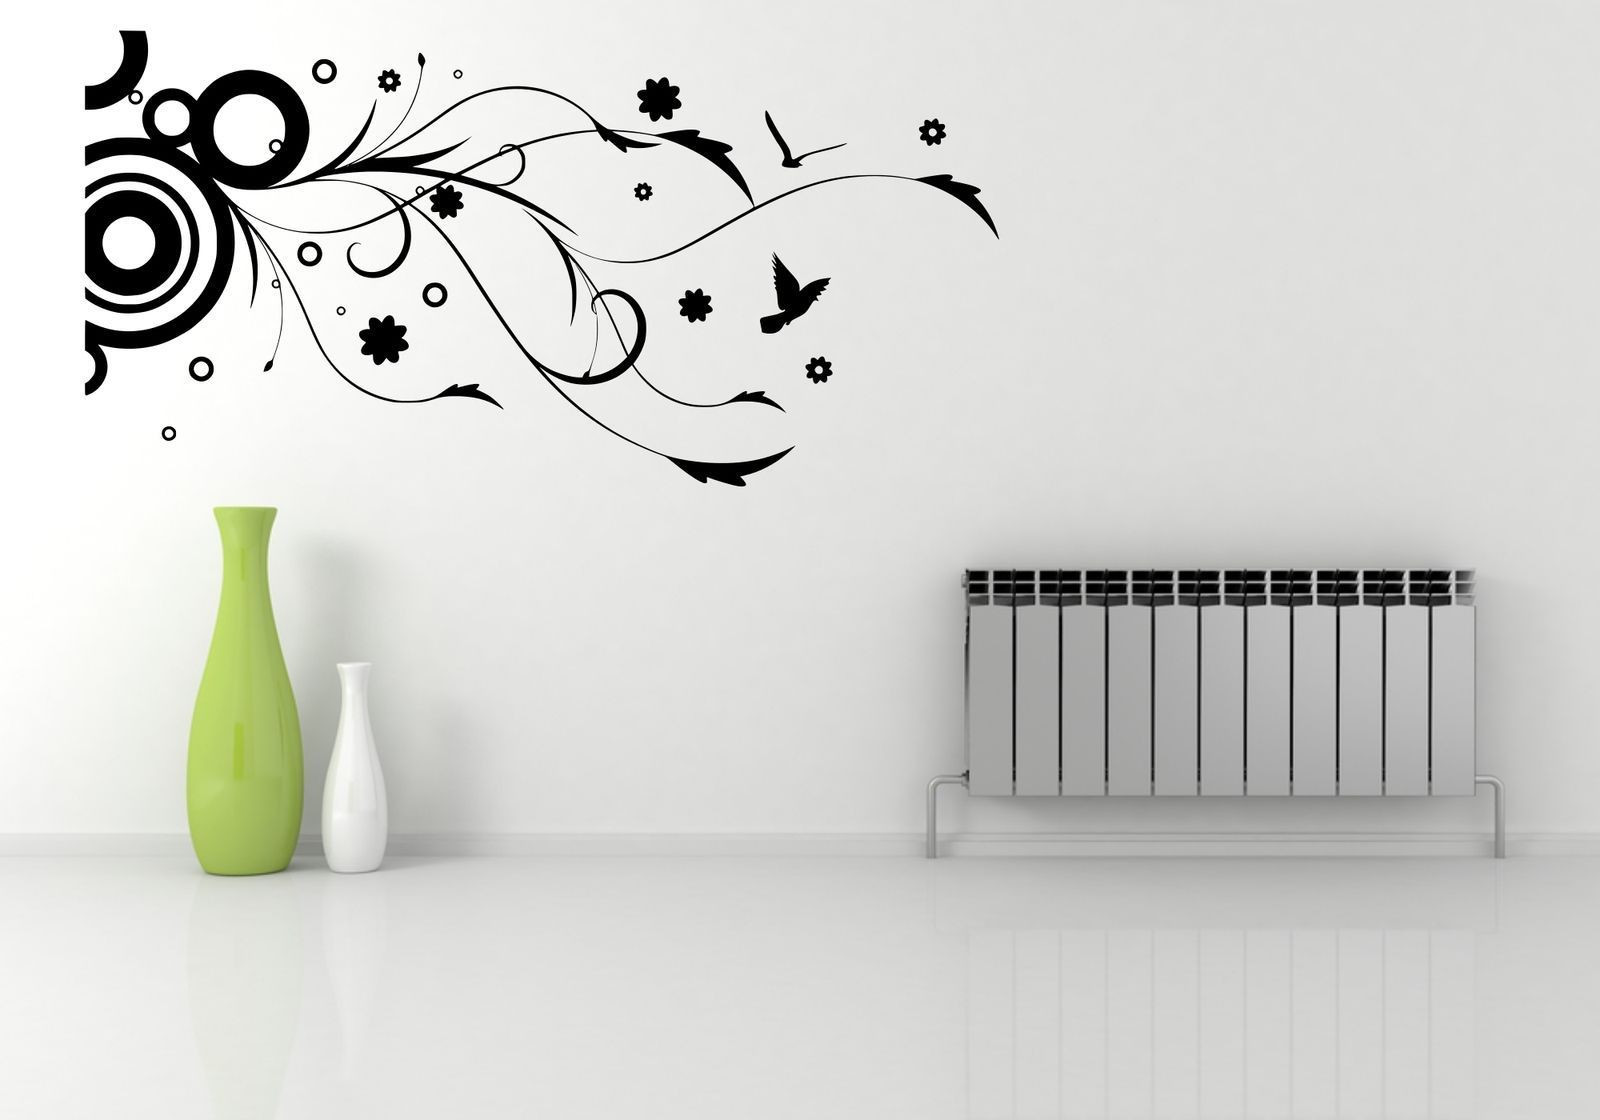 flower vase wall stickers of circle birds flower floral wall art wall sticker decal mural stencil with circle birds flower floral wall art wall sticker decal mural stencil vinyl print